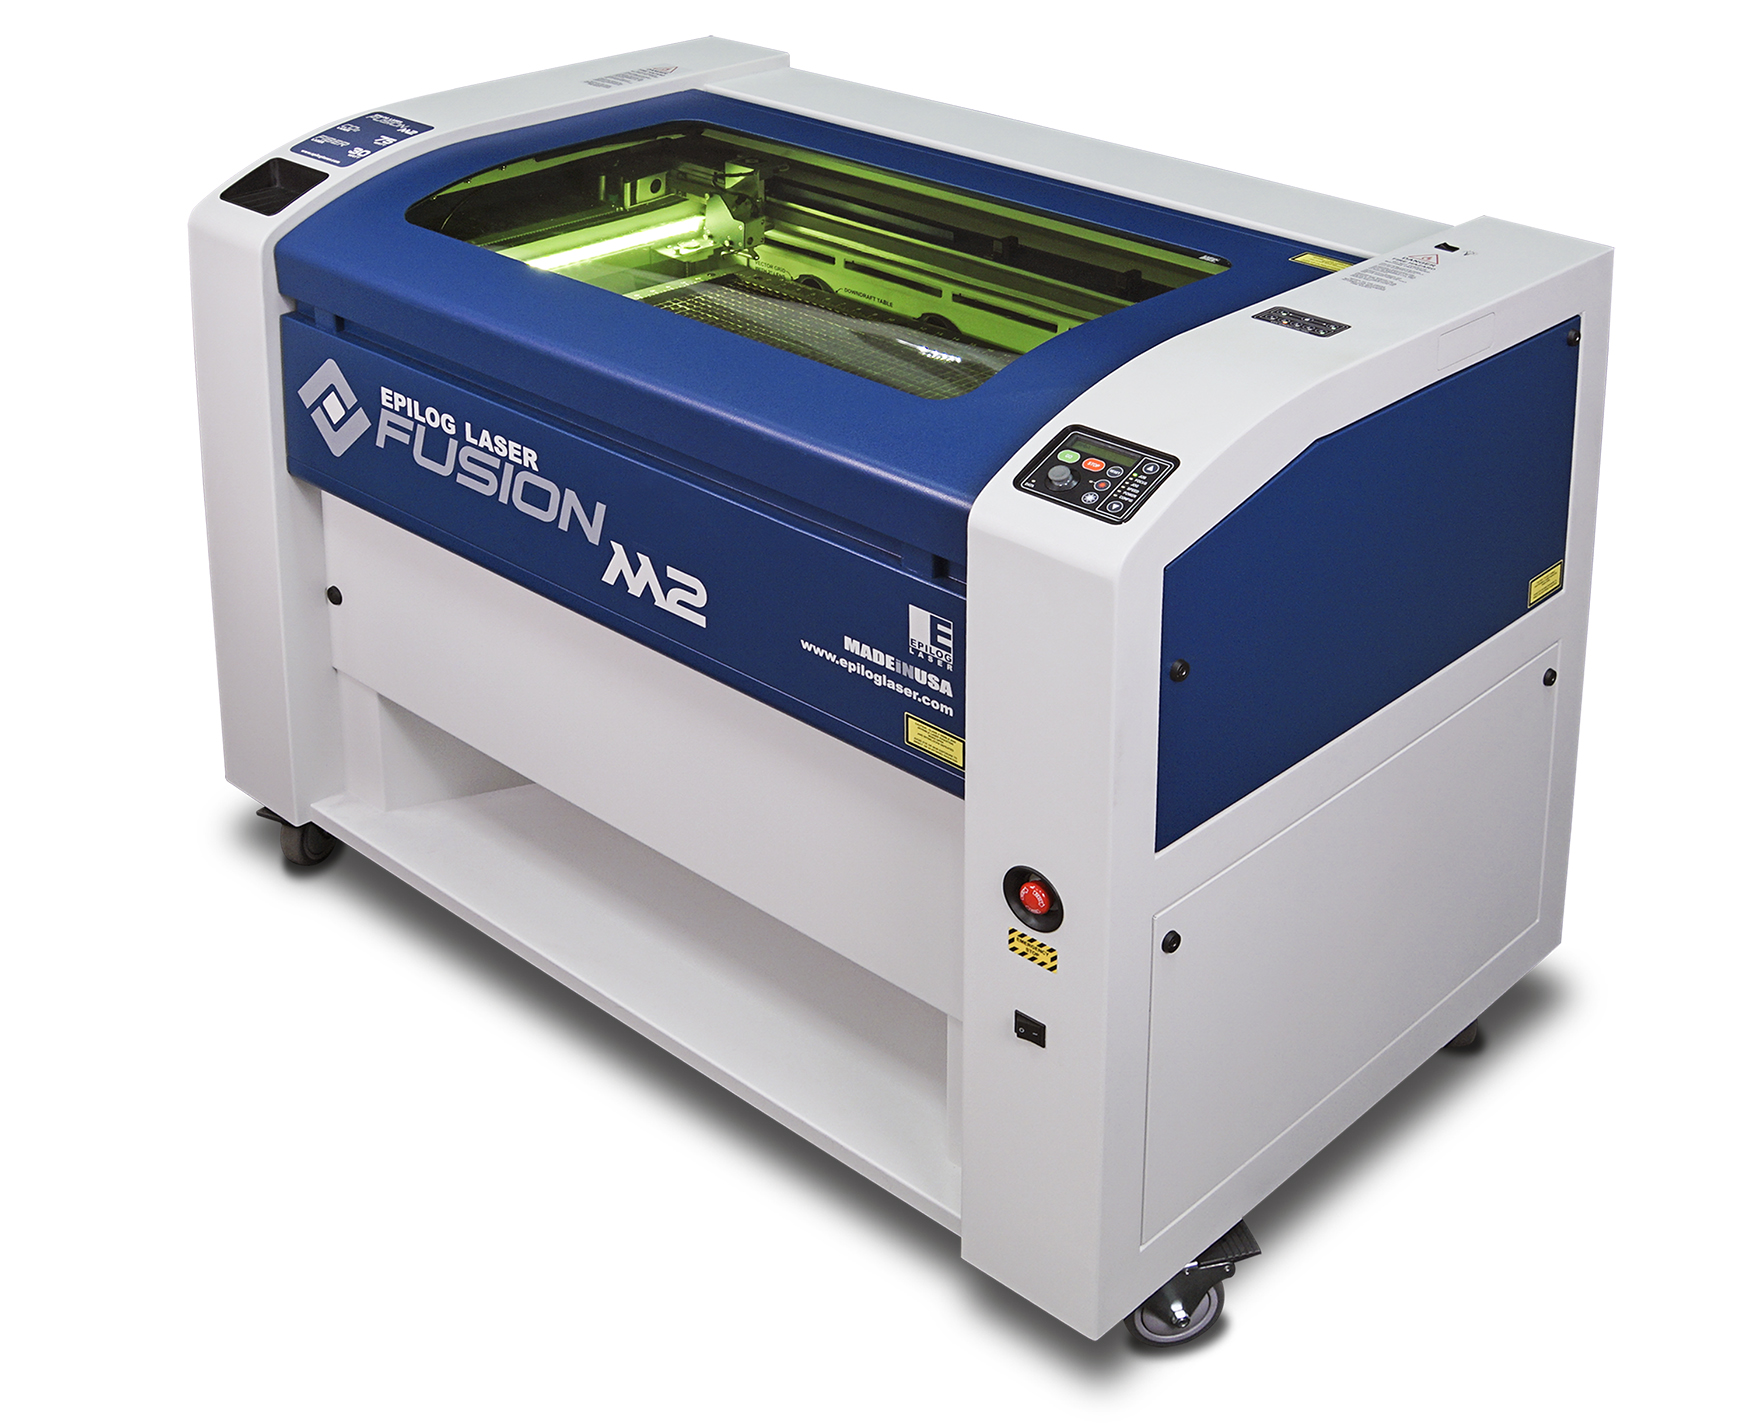 CO2/fiber dual-source engraving and cutting system. Source: Epilog Laser